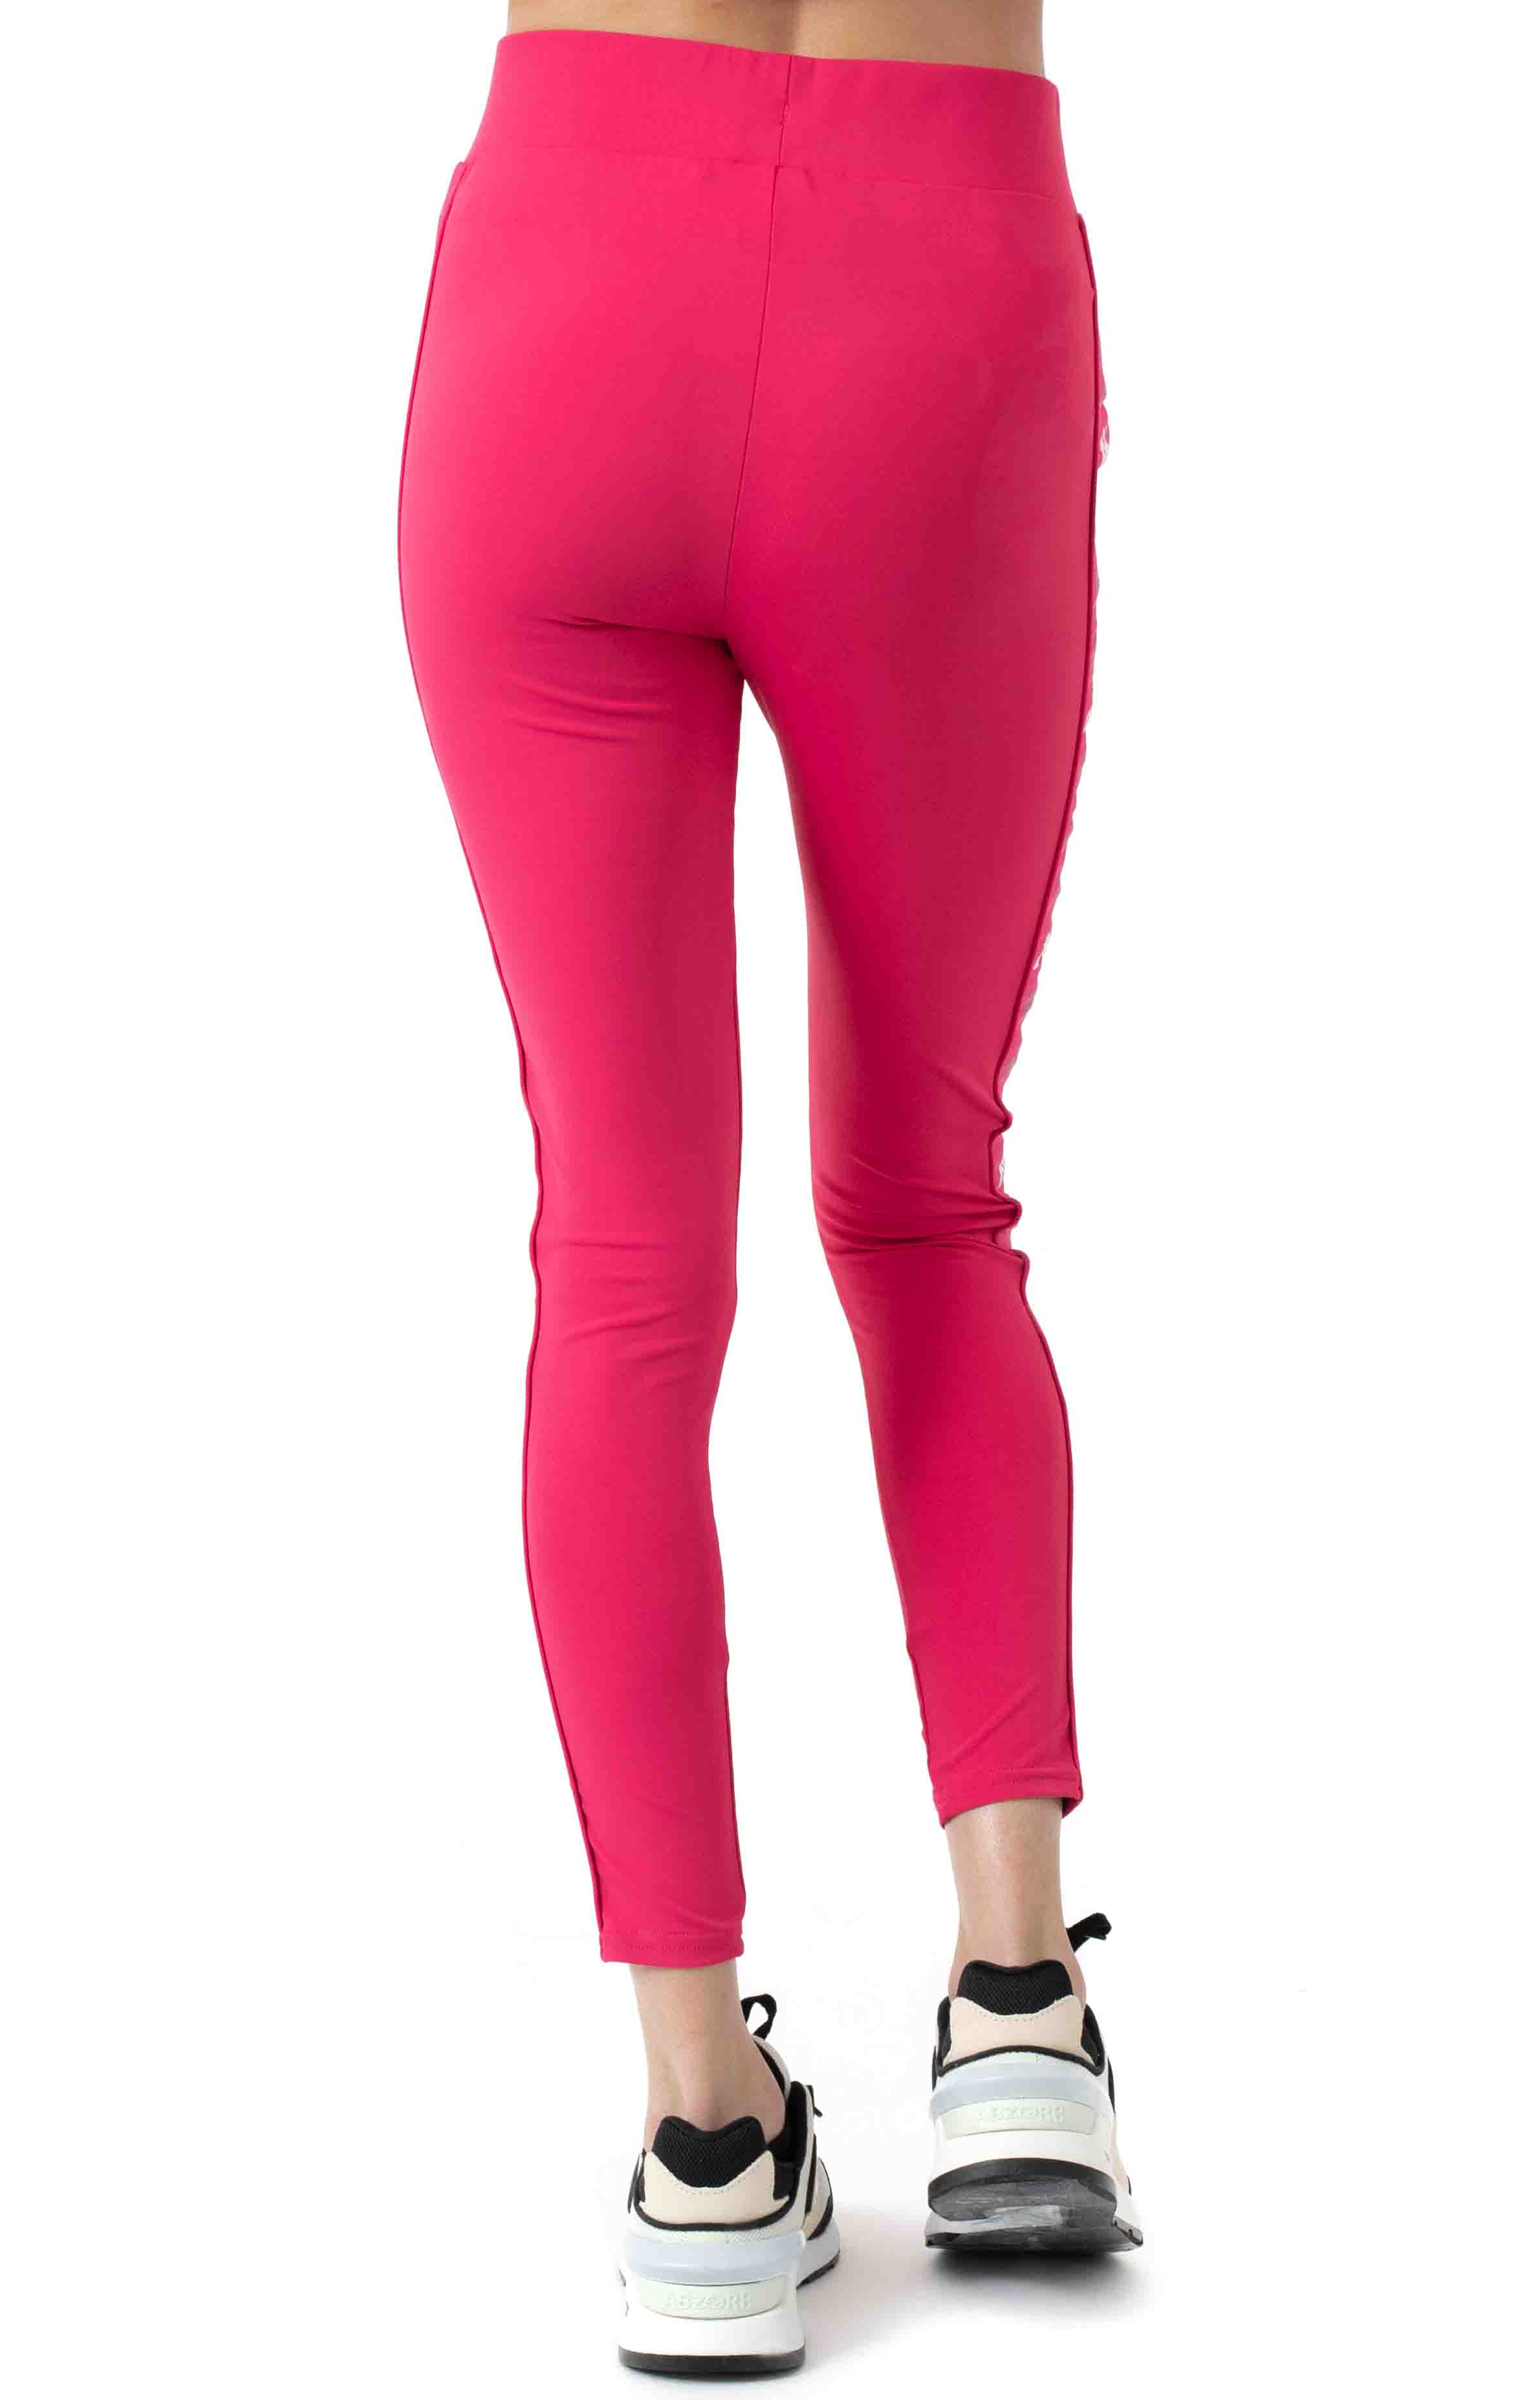 222 Banda Bartes Leggings - Pink/White  3